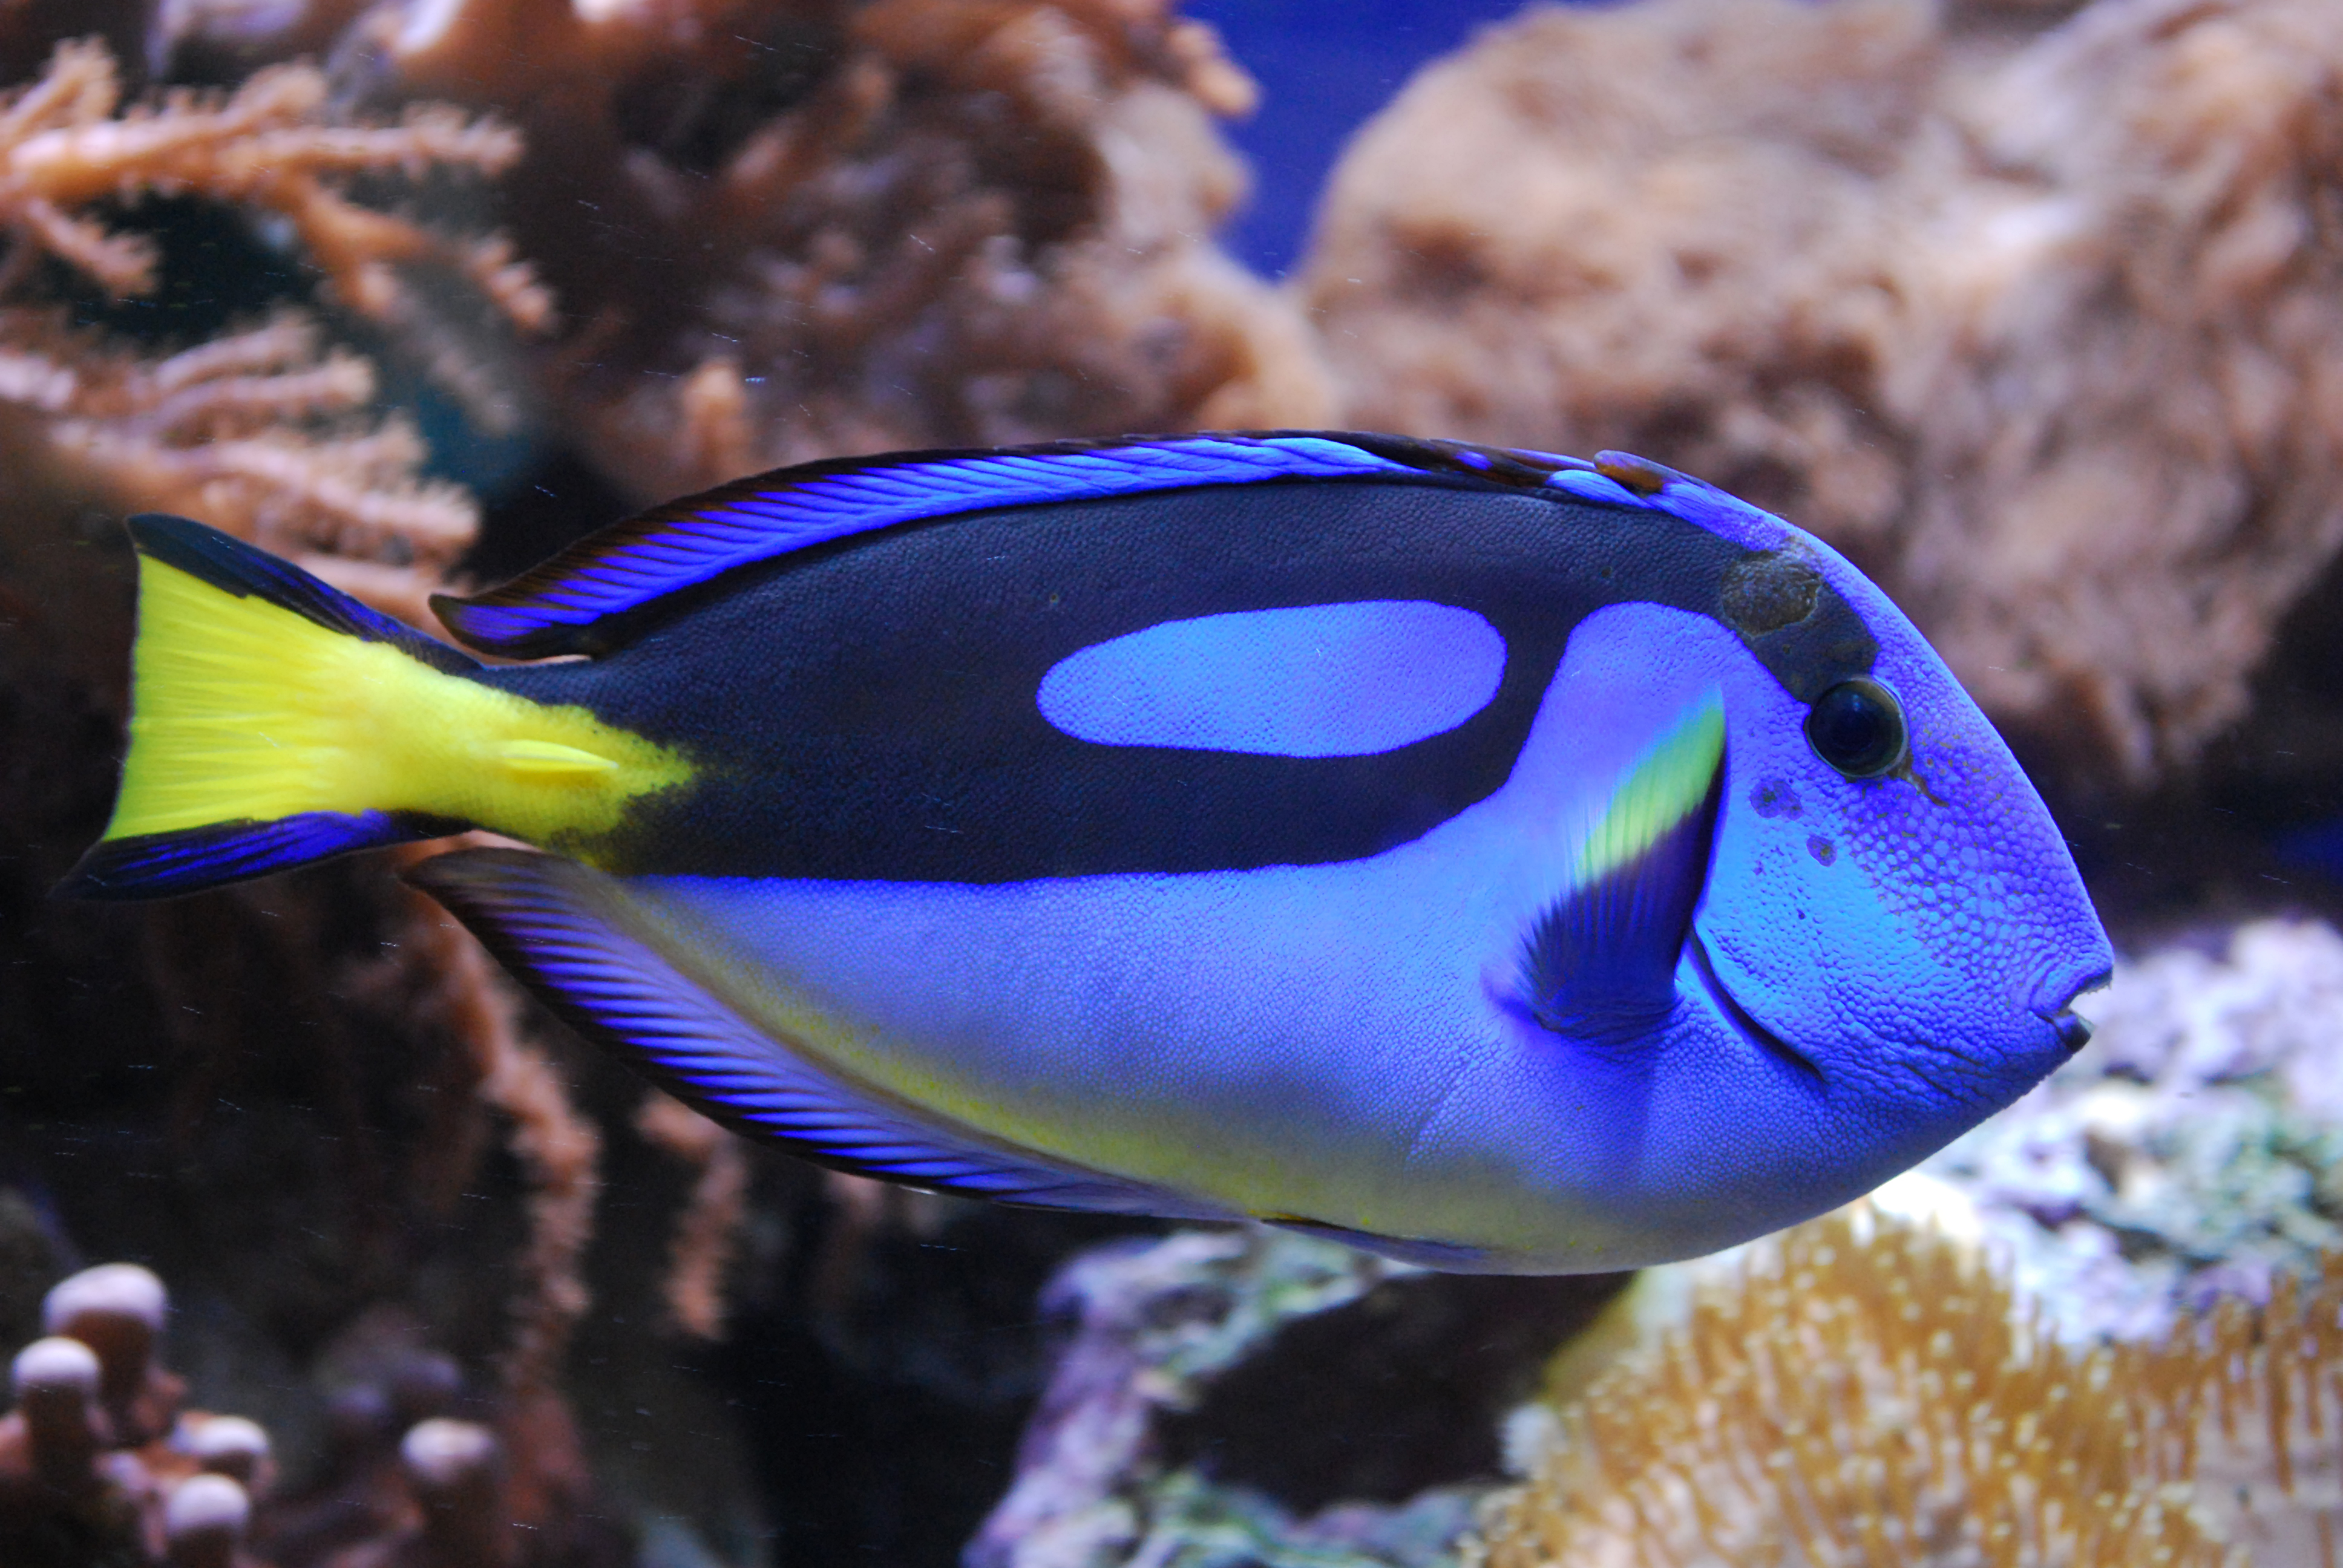 File paletten doktorfisch m nster jpg wikimedia commons for Royal blue tang fish